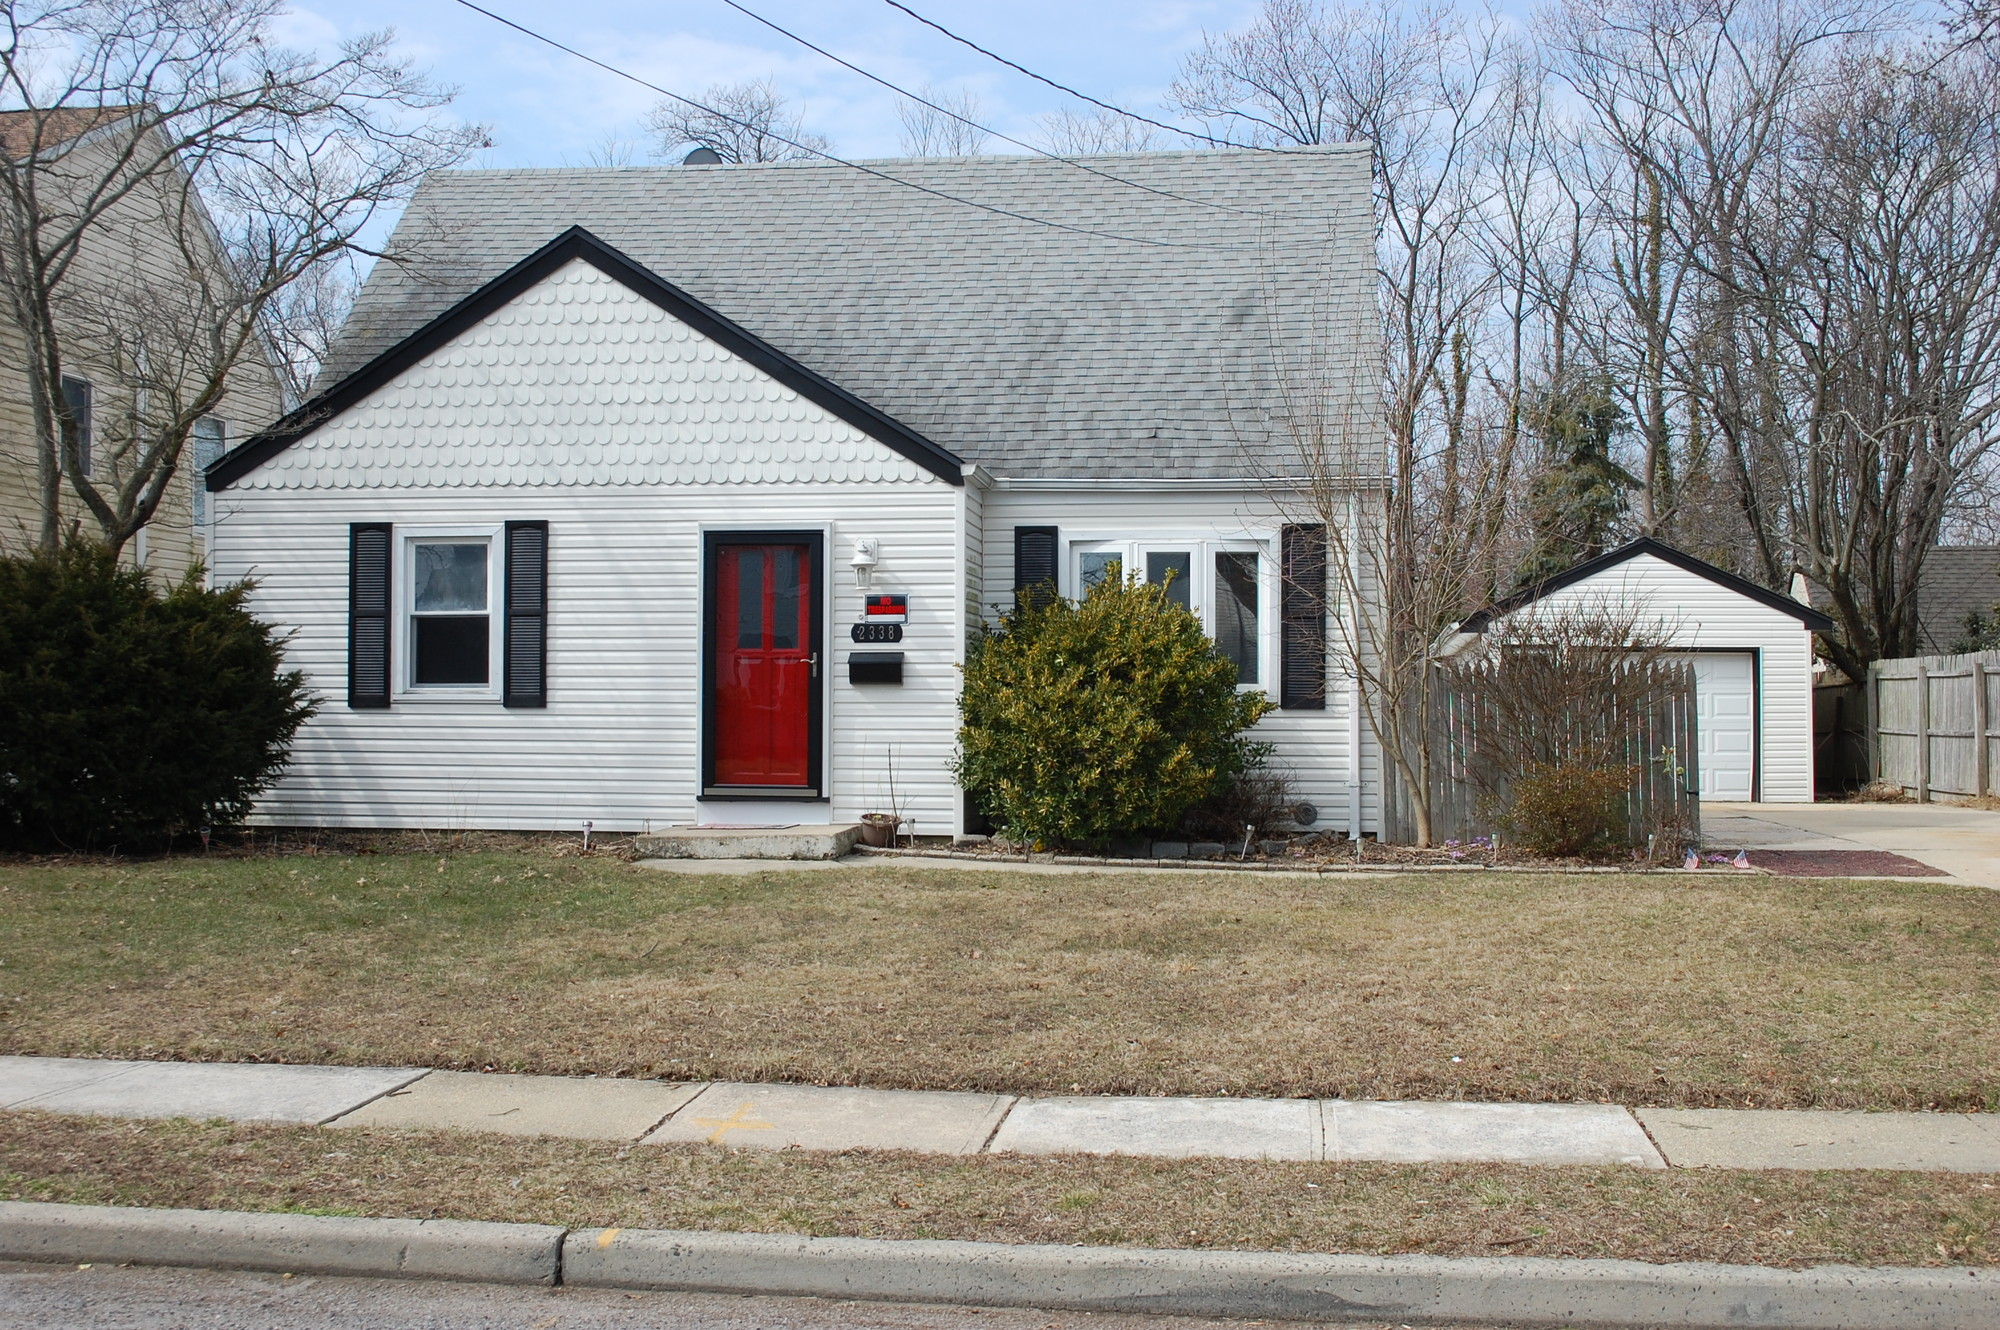 2338 Pine St. is one of two Sandy-damaged homes in Seaford up for auction.